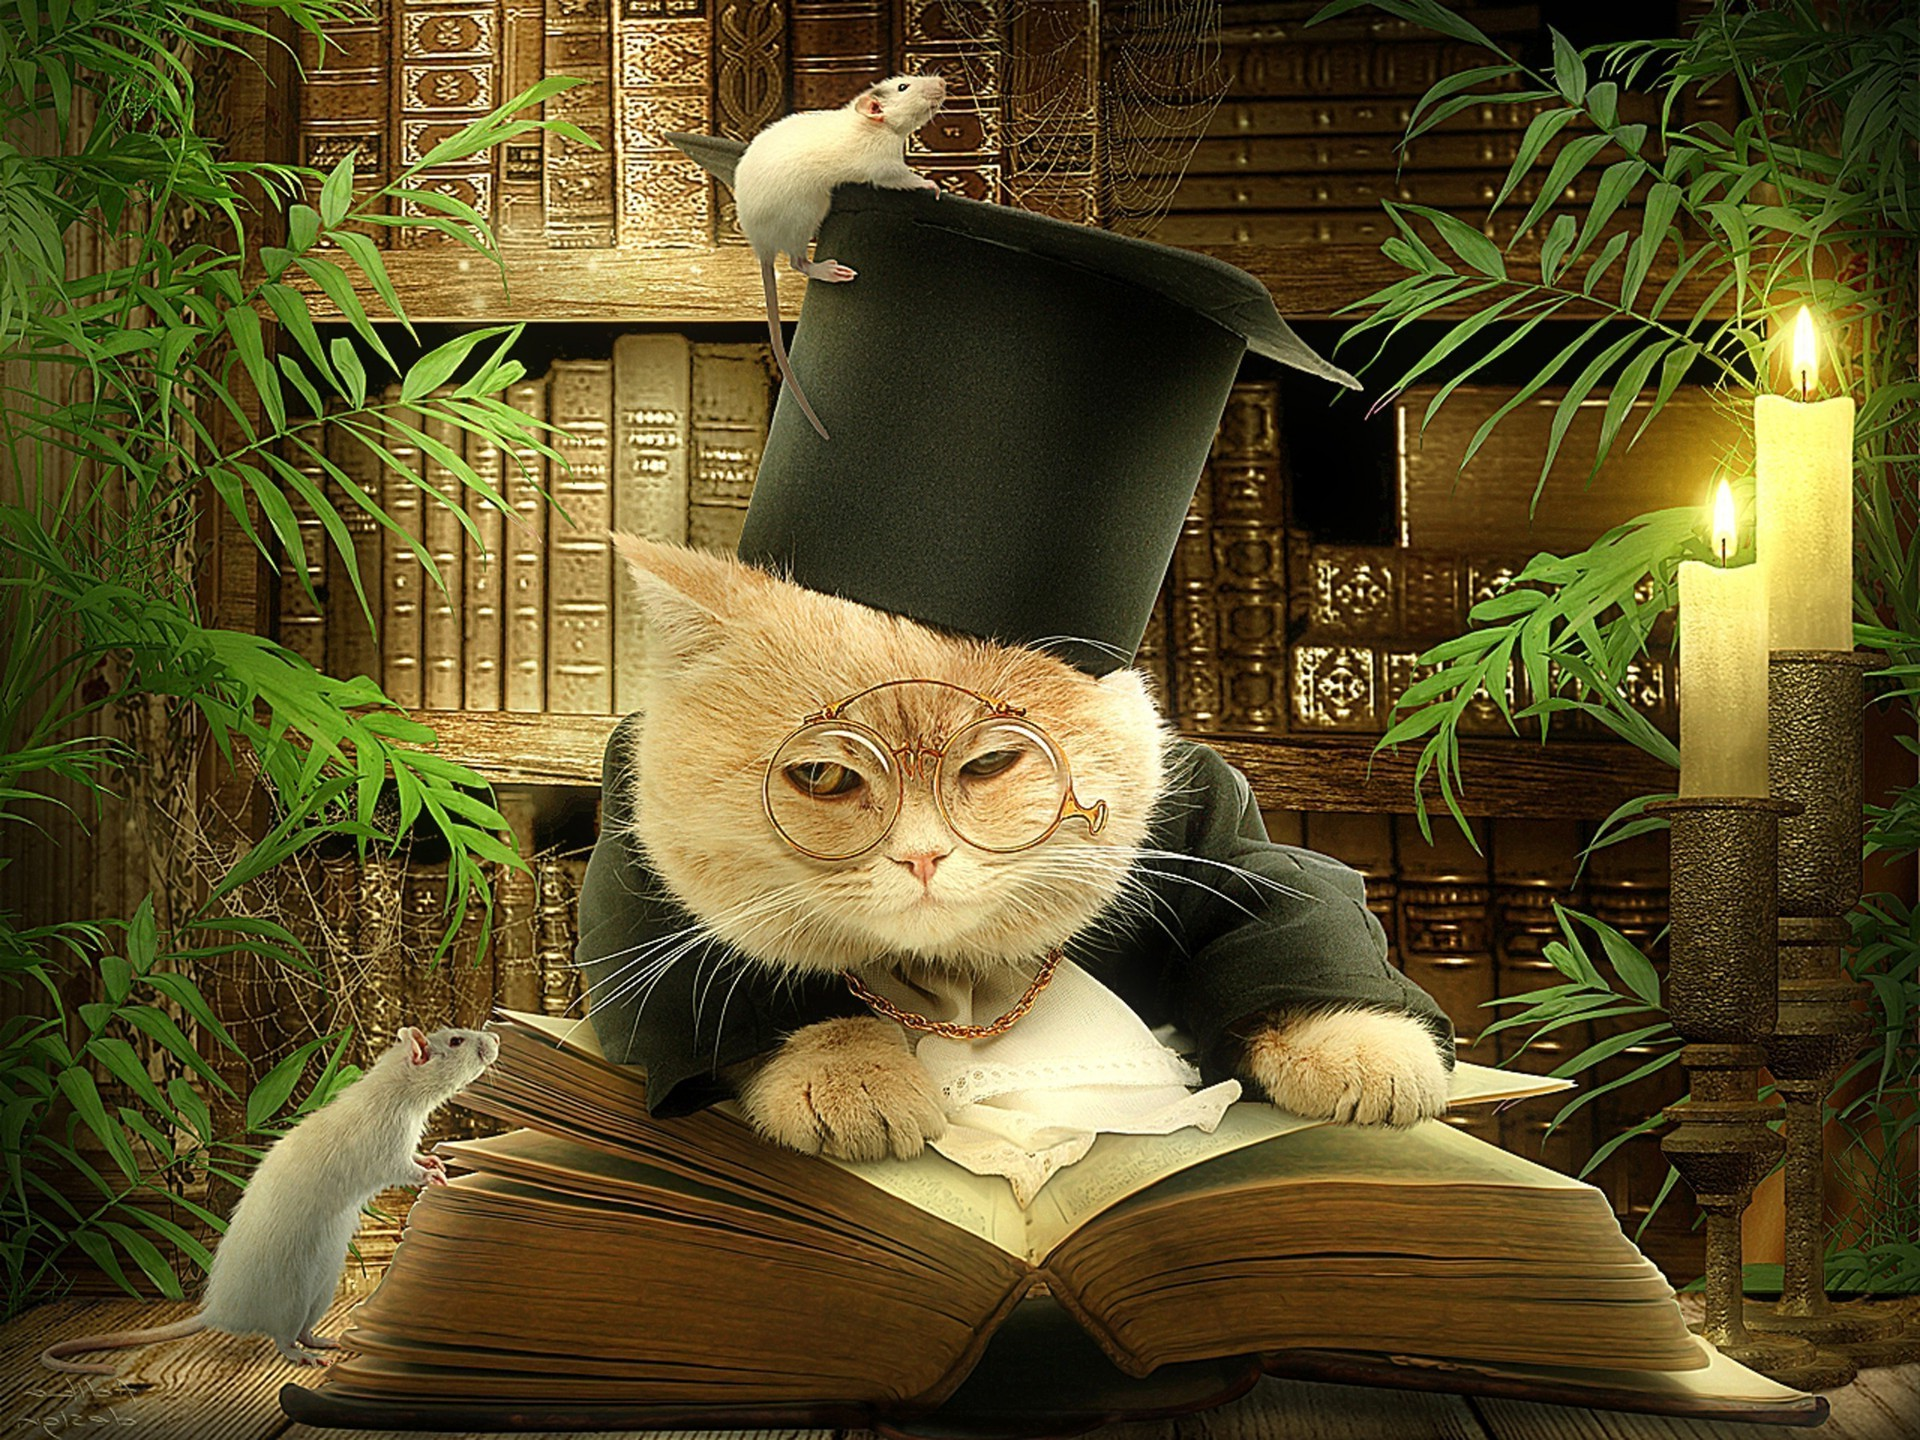 Wise cat reading a book